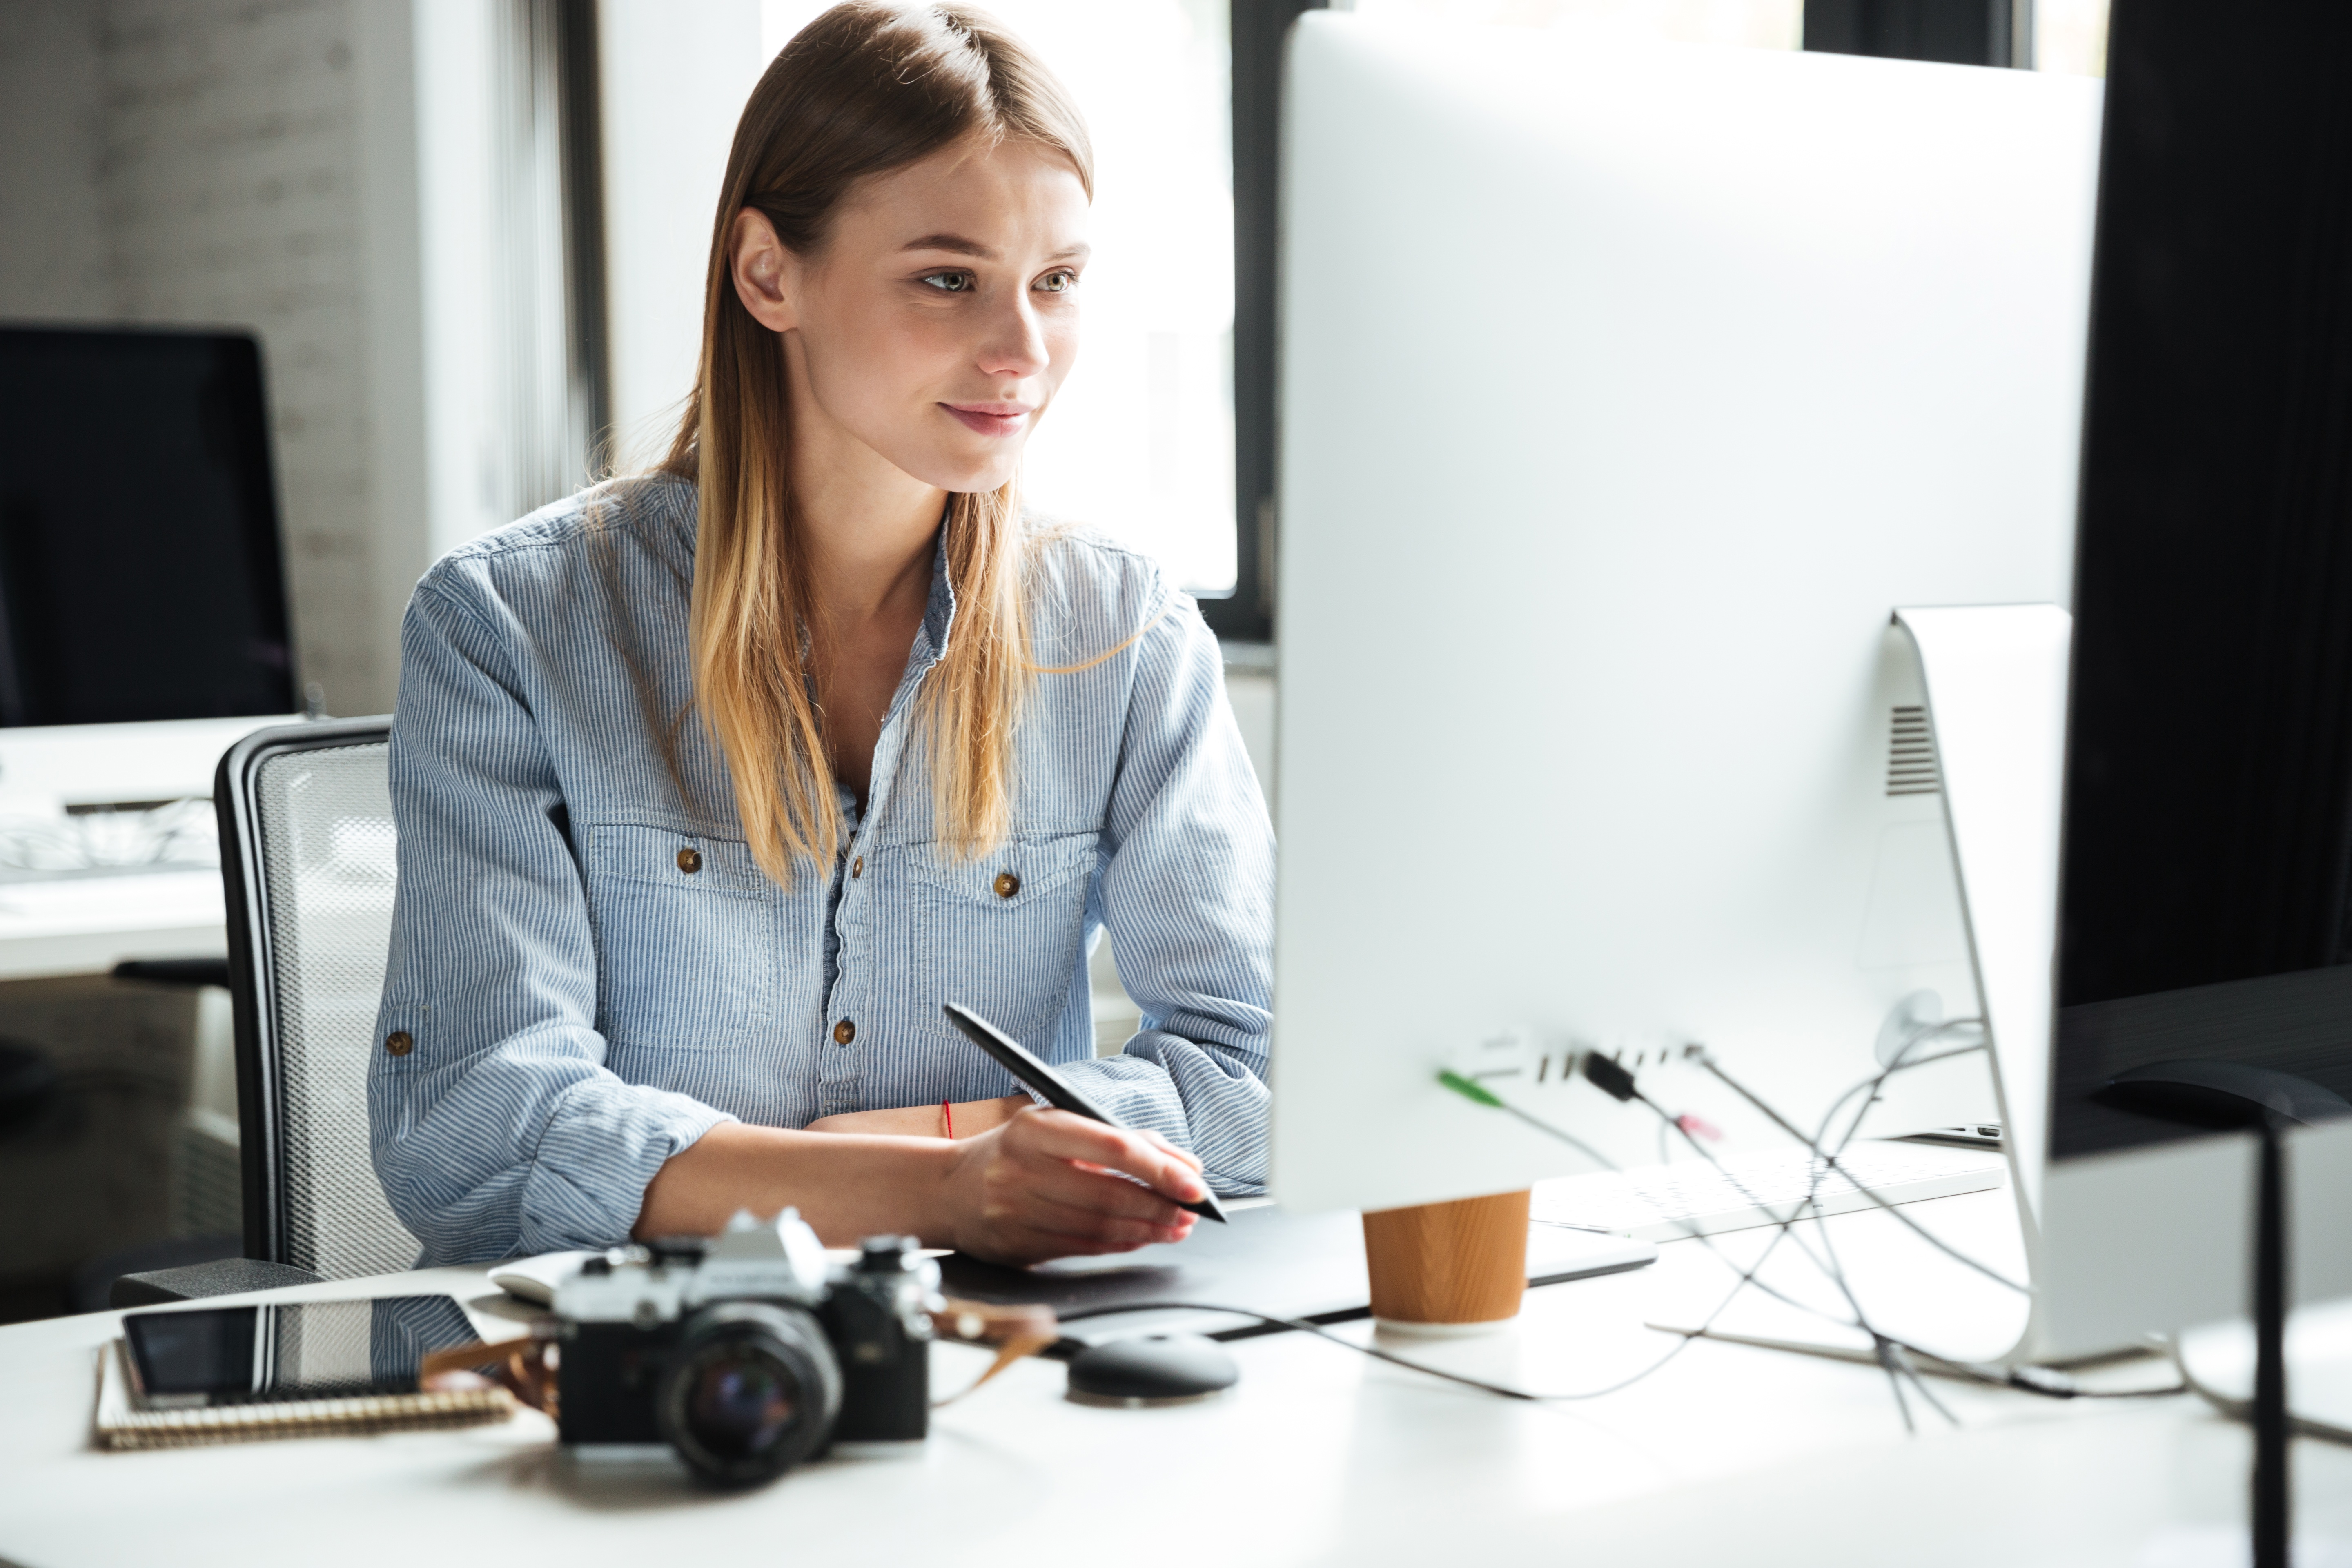 cheerful-young-woman-work-in-office-using-P5R8HHG